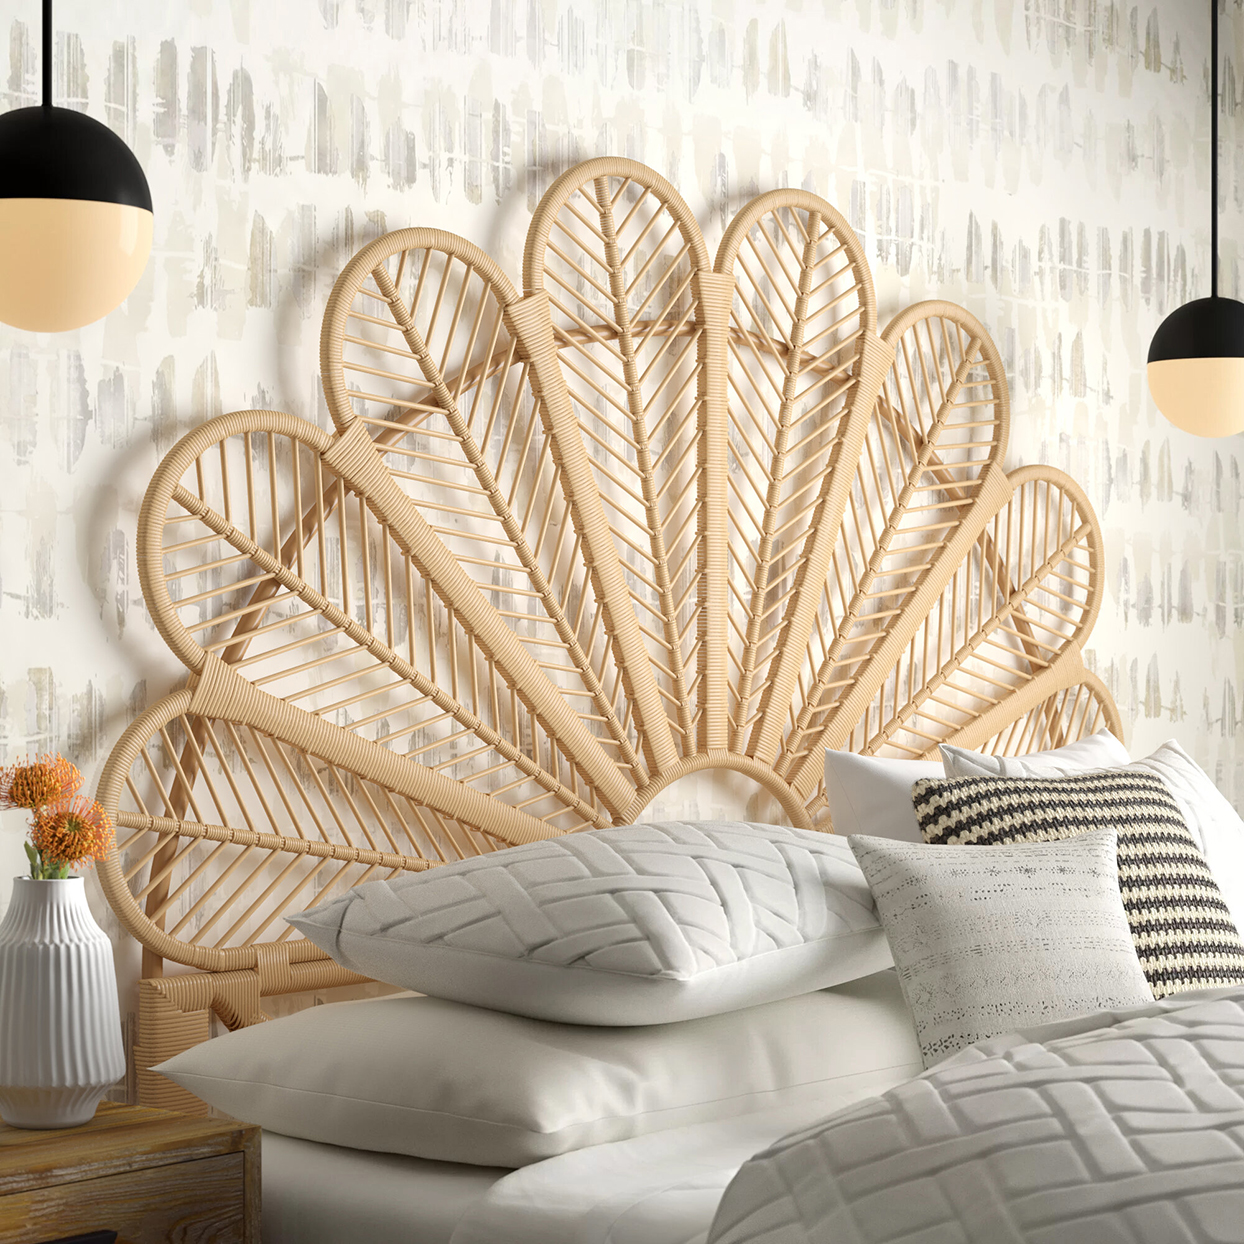 rattan headboard on white bed against wallpapered wall